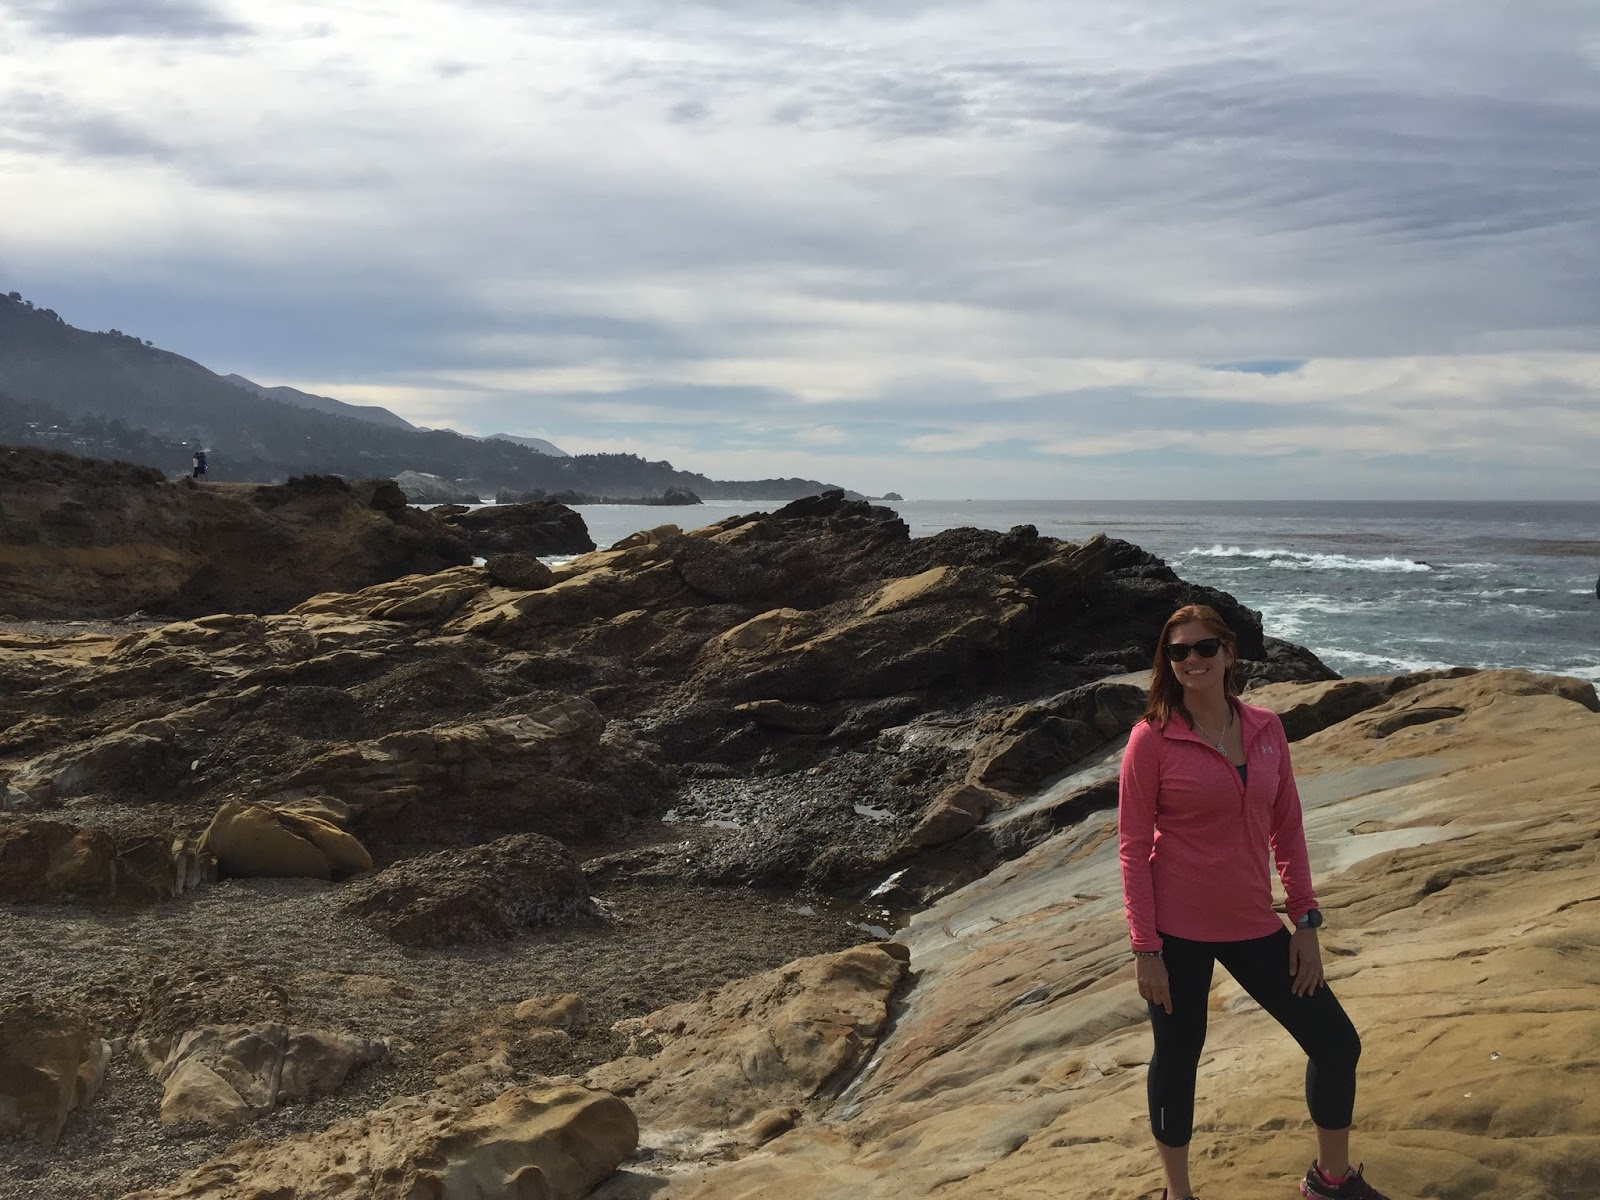 Point Lobos - Big Sur